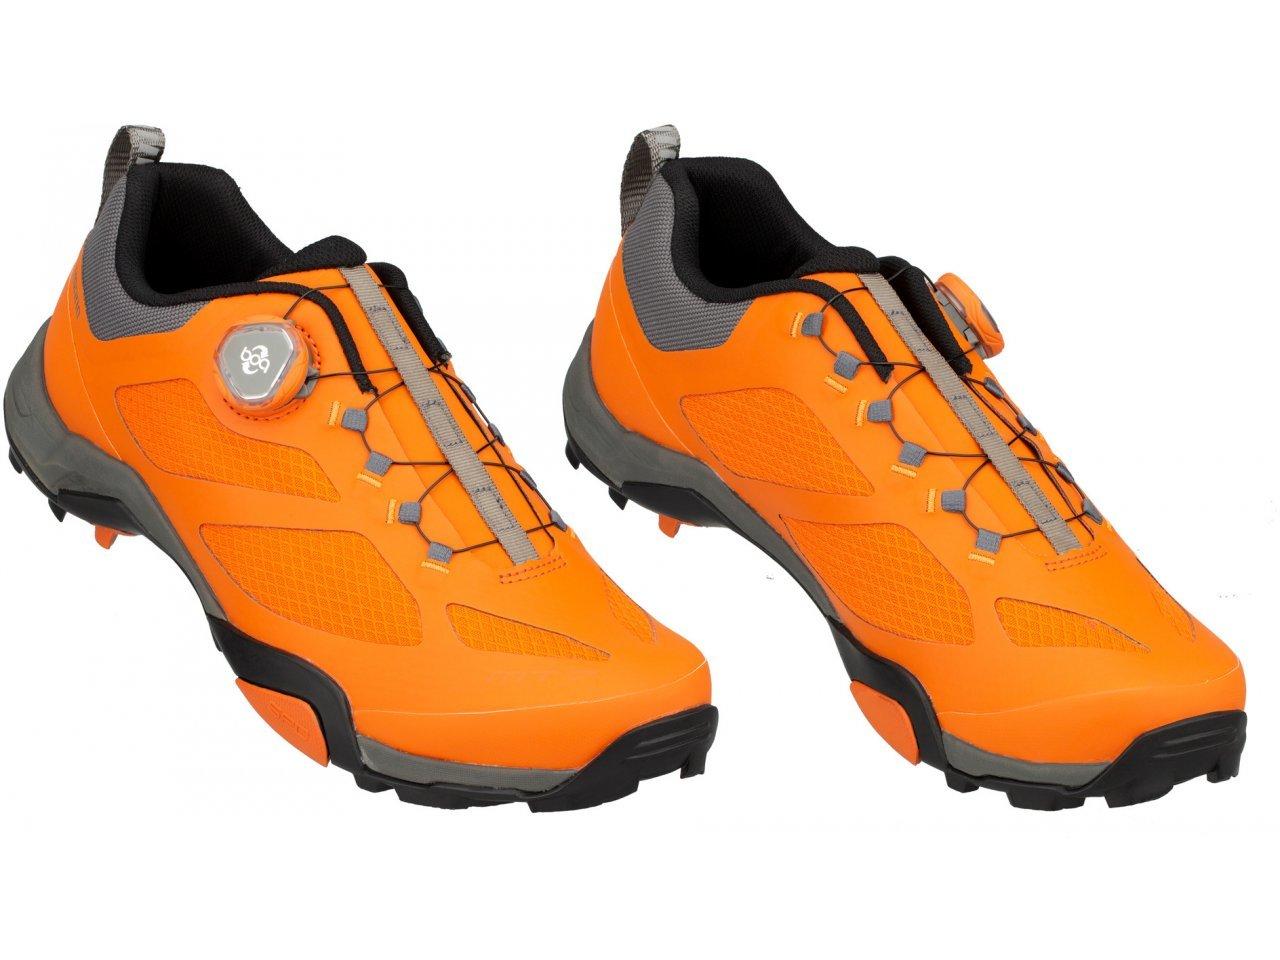 shimano-sh-mt7-mtb-touring-shoes-orange-42-60732-259059-1553699474